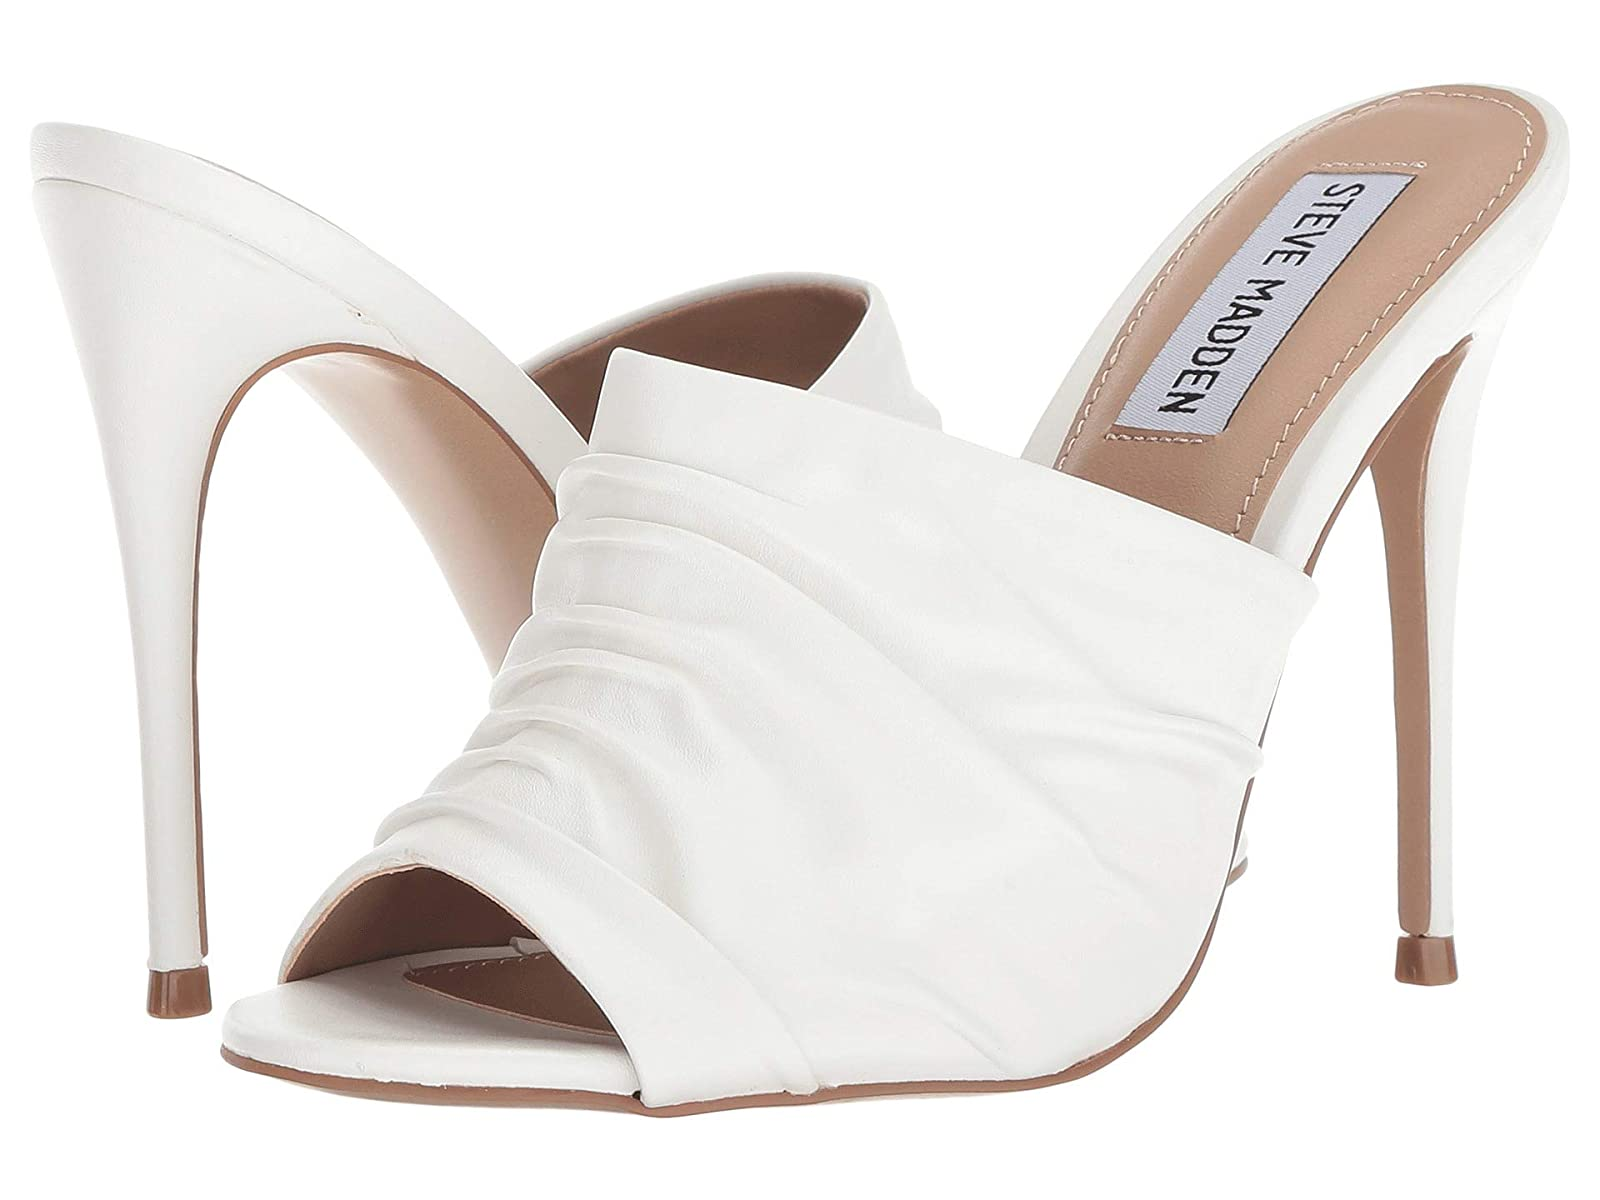 Steve Madden SweetheartCheap and distinctive eye-catching shoes